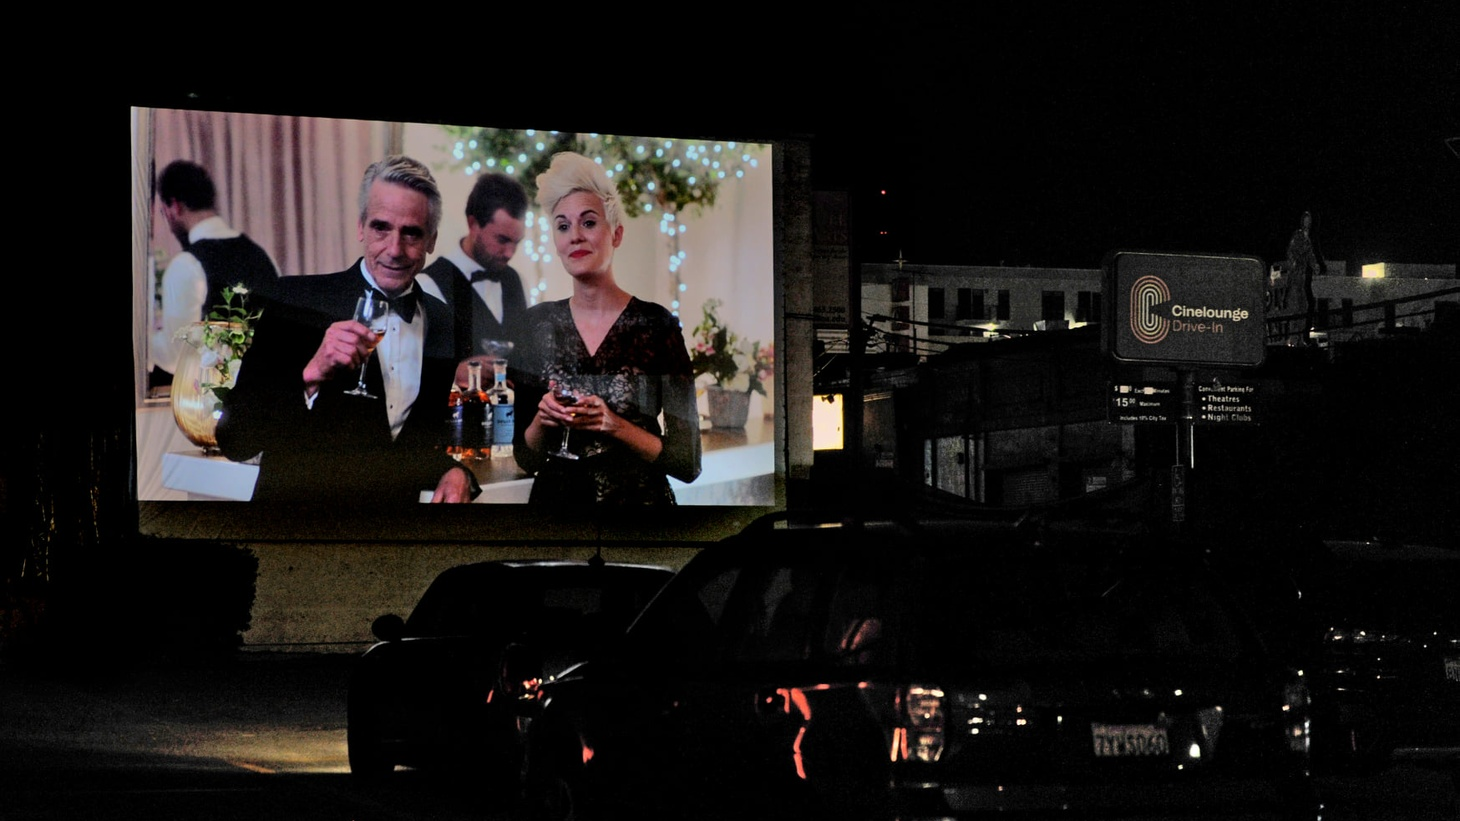 Art house theater Cinelounge has opened a boutique drive-in movie theater in the heart of Hollywood.